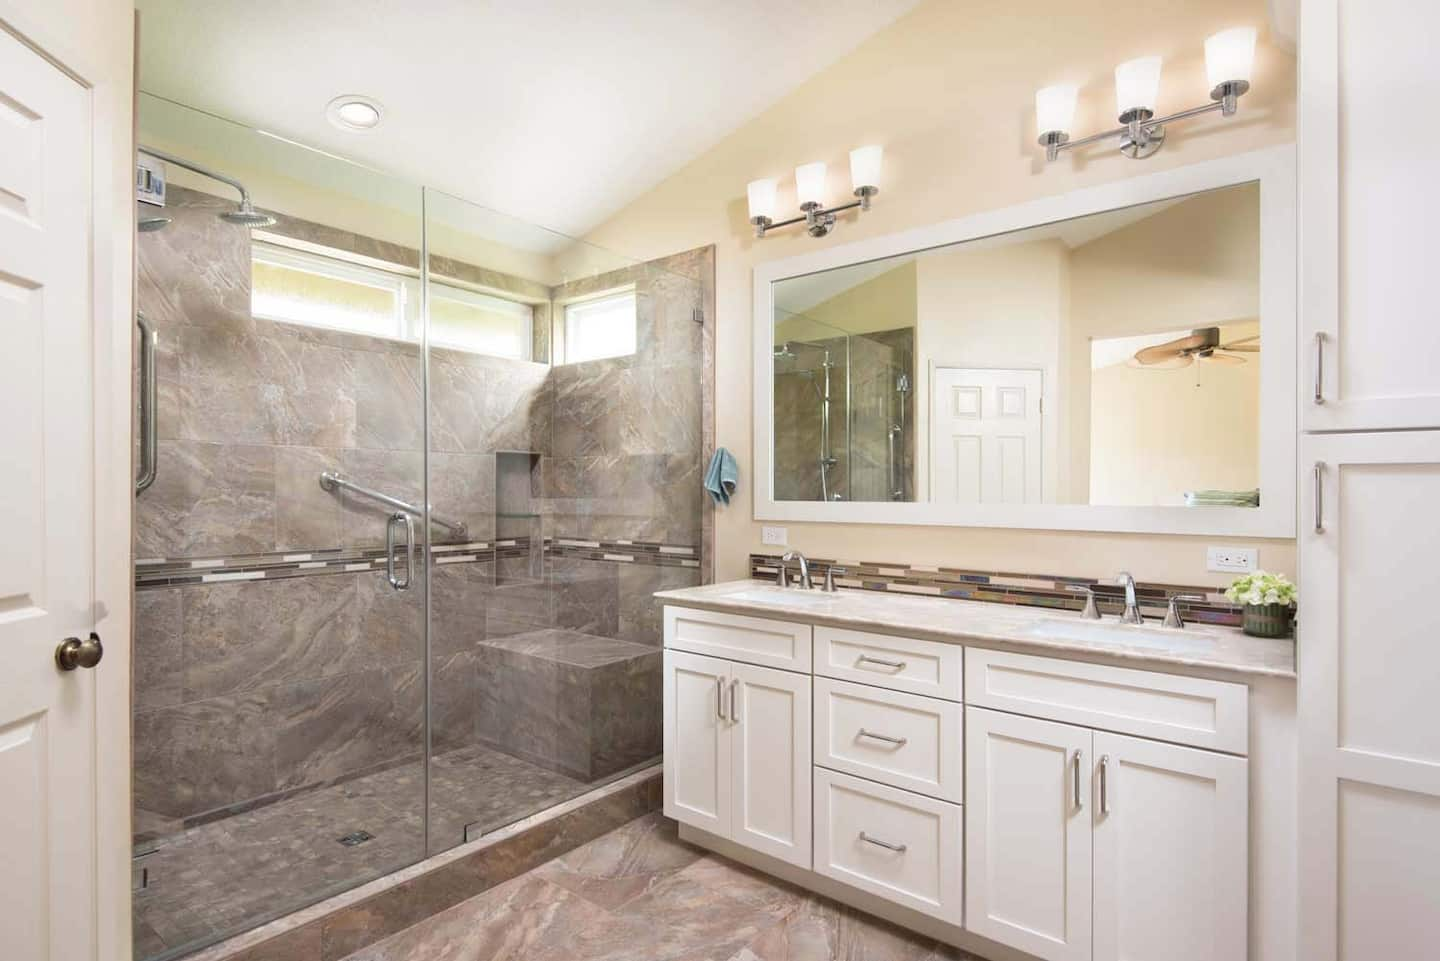 Bathroom Remodeling Pittsburgh how much does a bathroom remodel cost? | angie's list